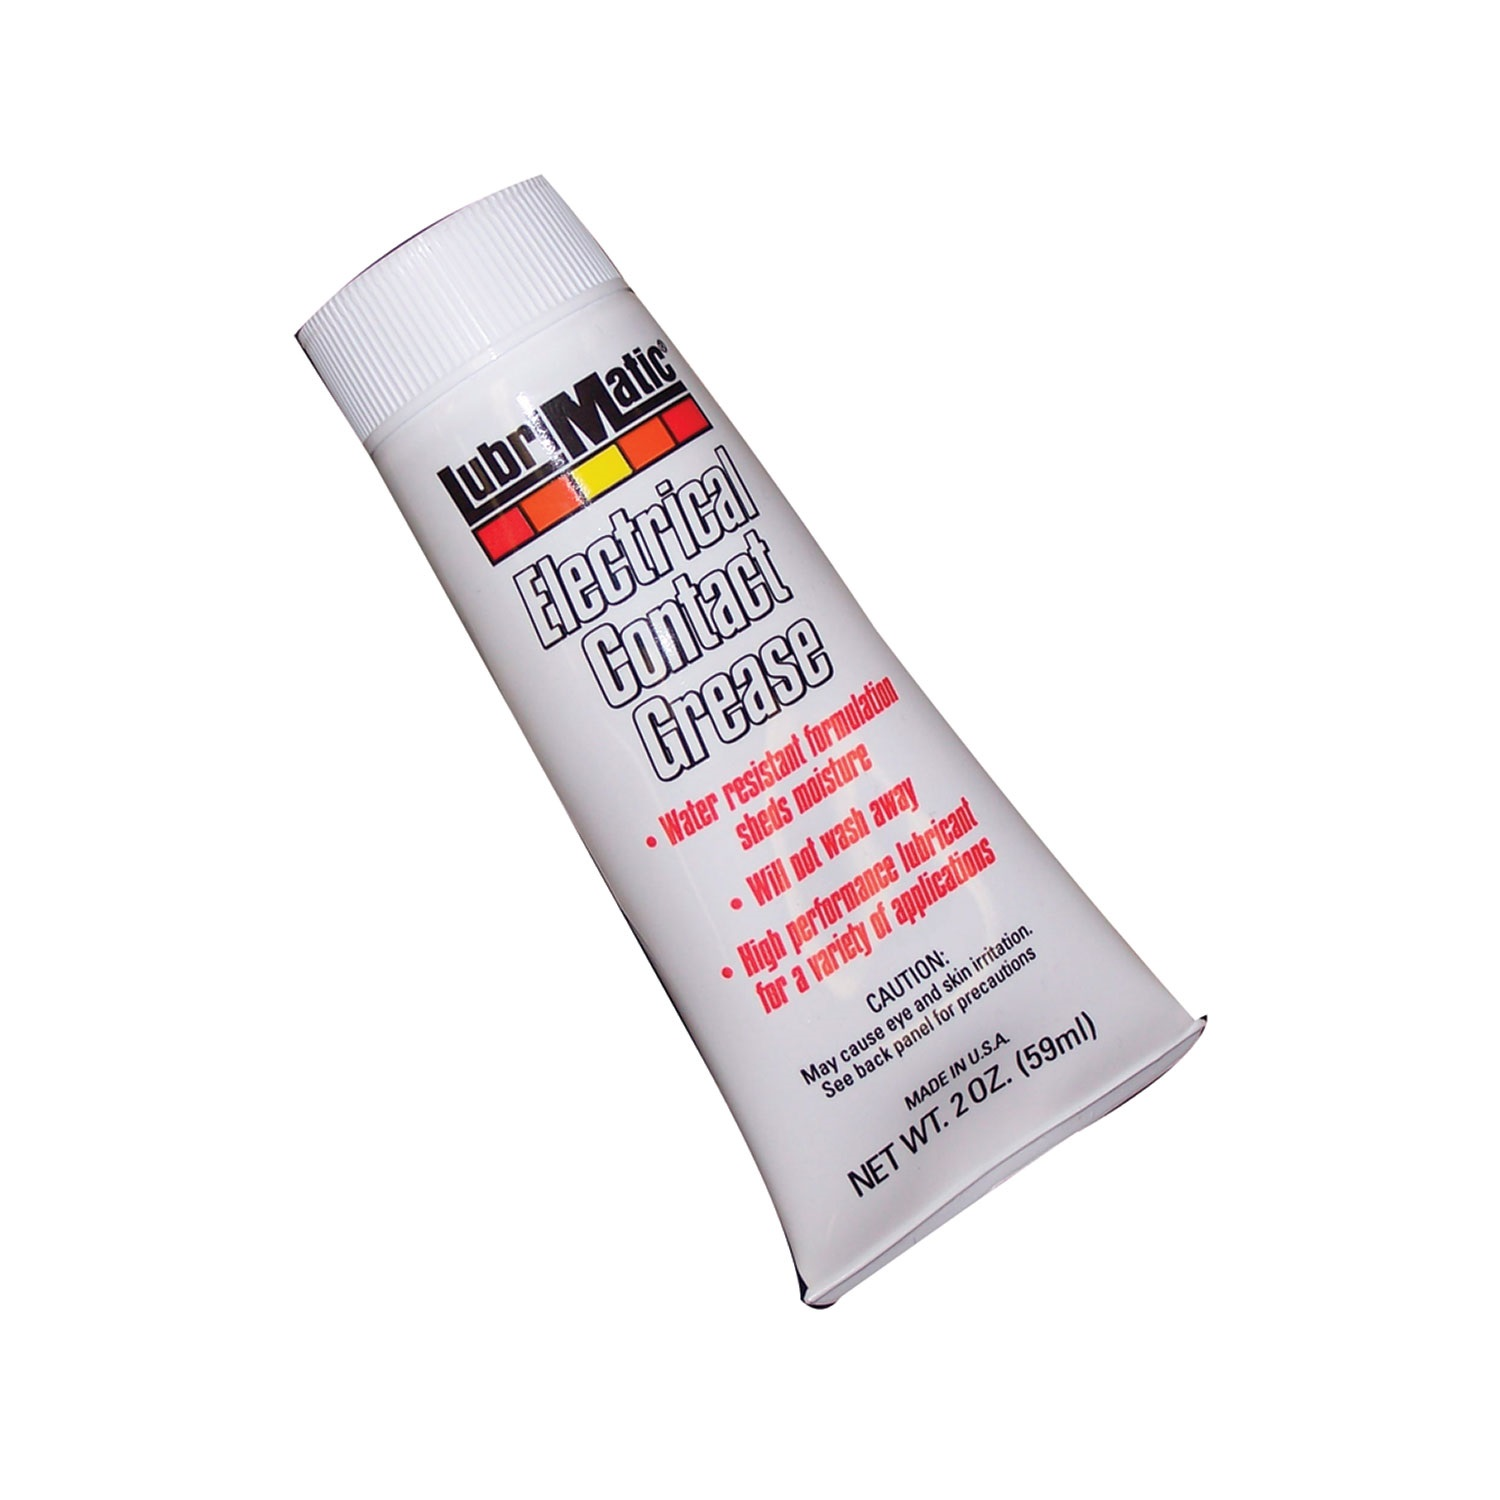 2 Oz Tube Dielectric Grease Replacement Auto Part, Easy to Install